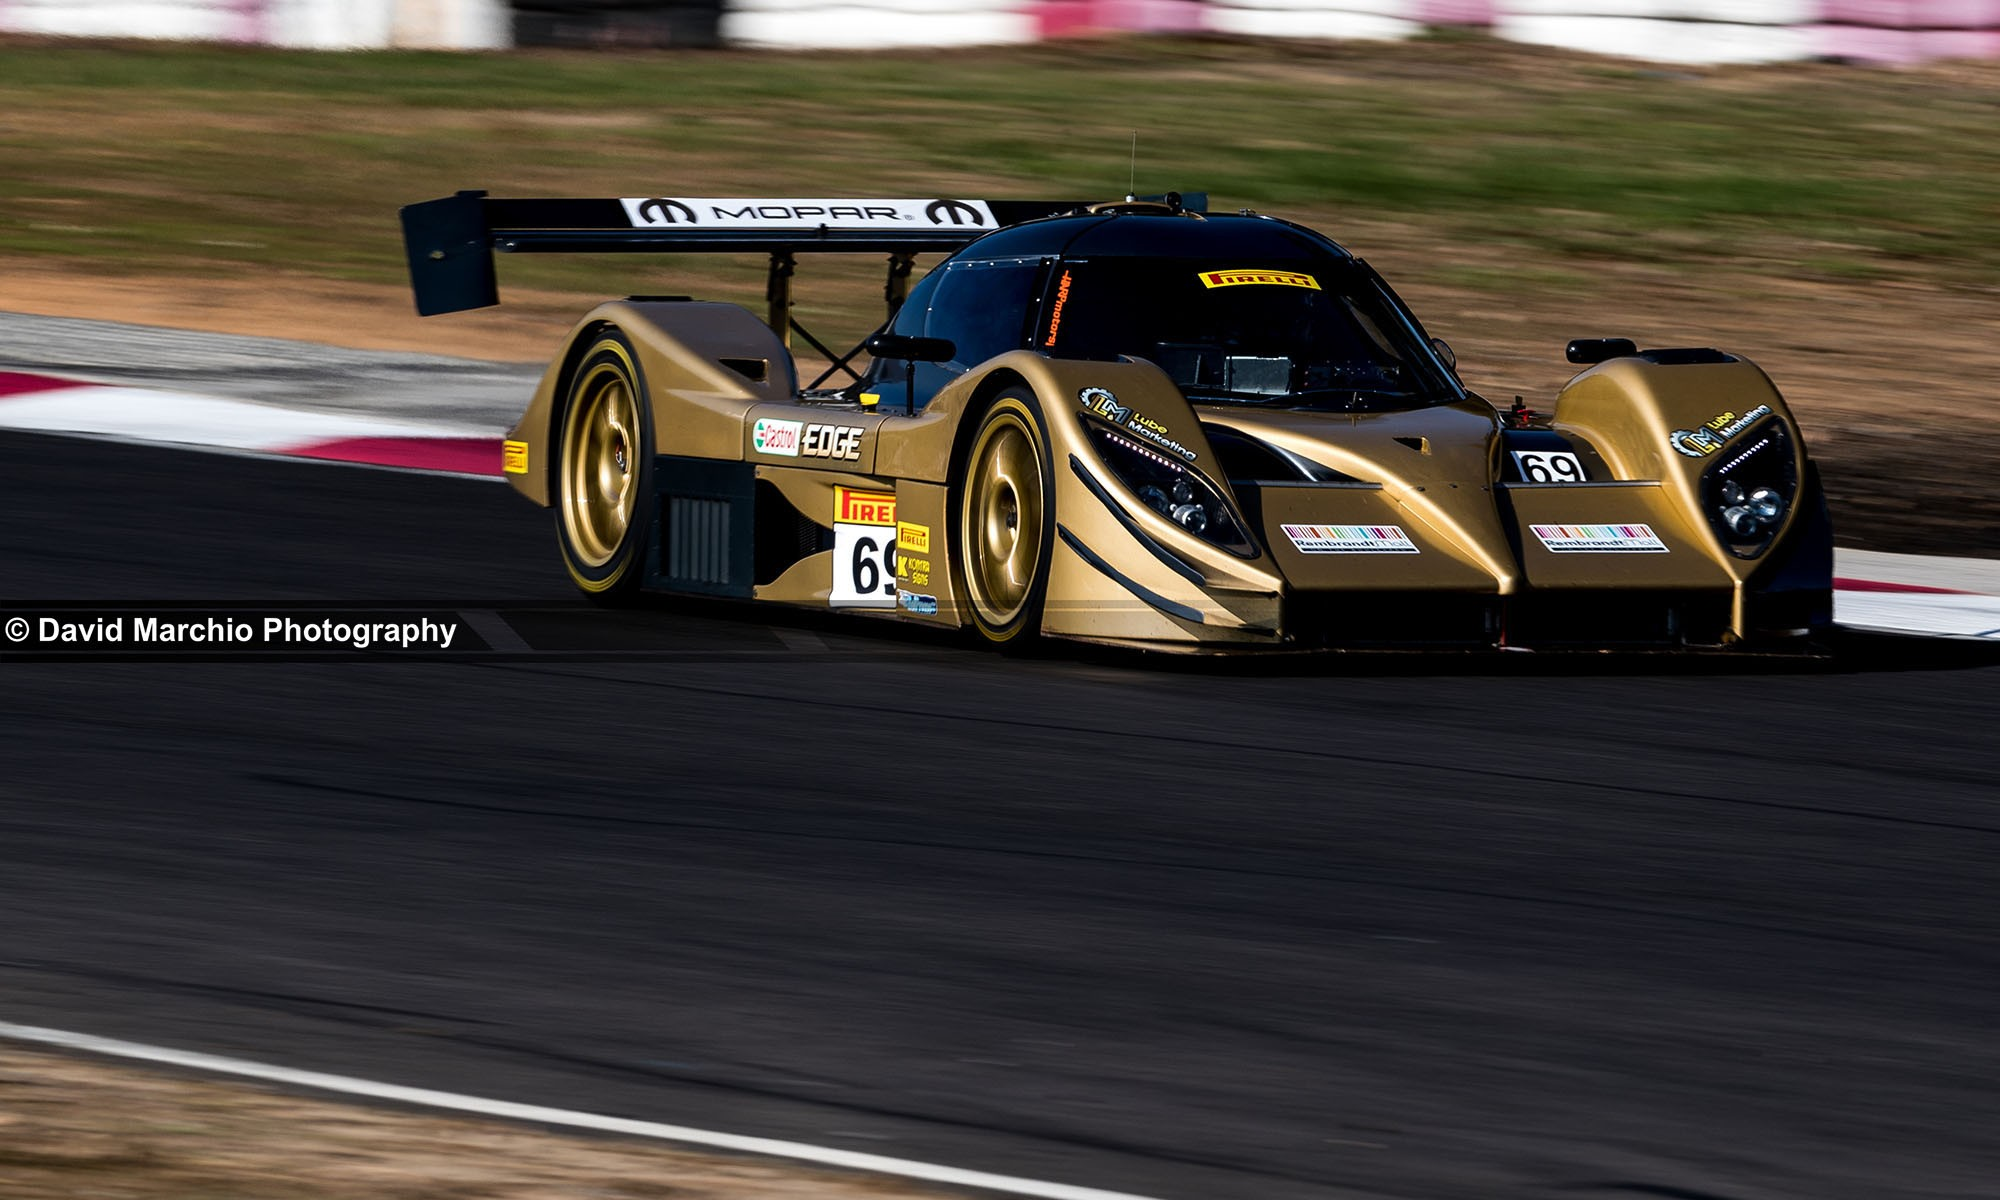 The Aquila CR1 lead for several laps before an unfortunate pit lane fire caused its withdrawal